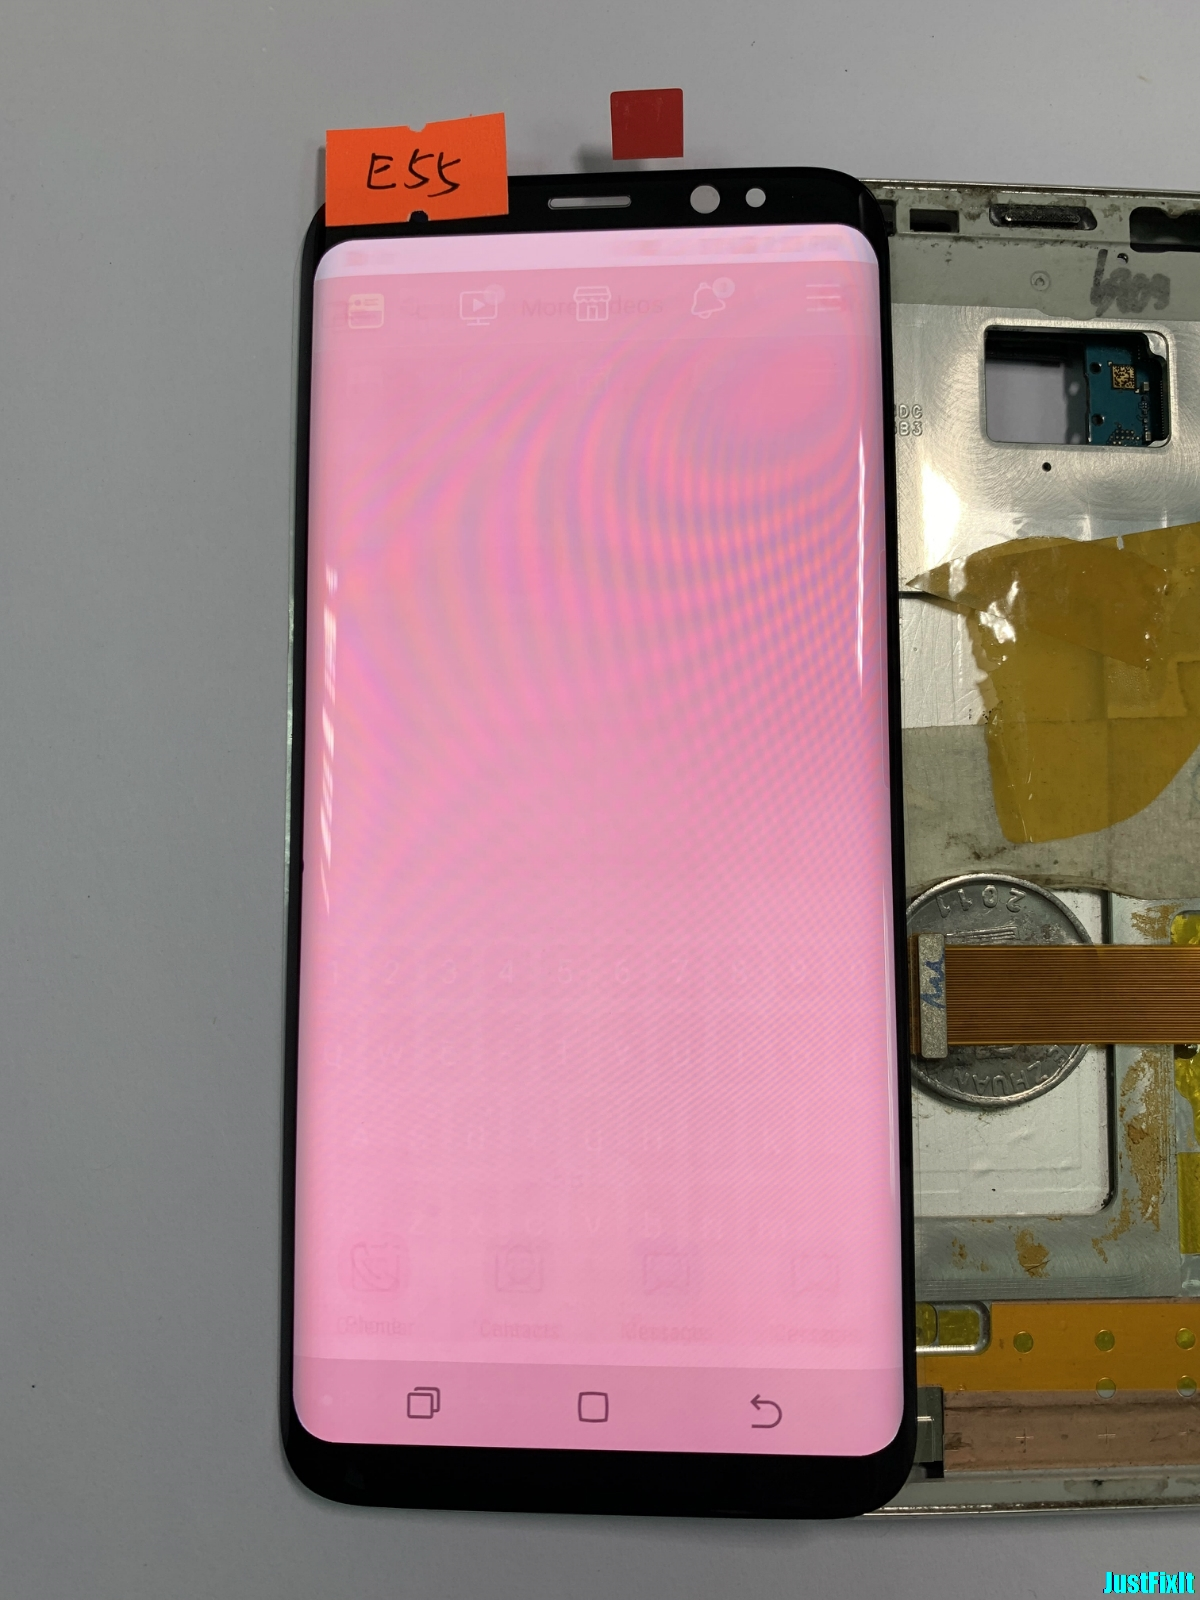 NO.E55 For Samsung Galaxy S8 G950f G950fd G950u Burn-in shadow Lcd Display Touch Screen Digitizer Super AMOLED ScreenNO.E55 For Samsung Galaxy S8 G950f G950fd G950u Burn-in shadow Lcd Display Touch Screen Digitizer Super AMOLED Screen